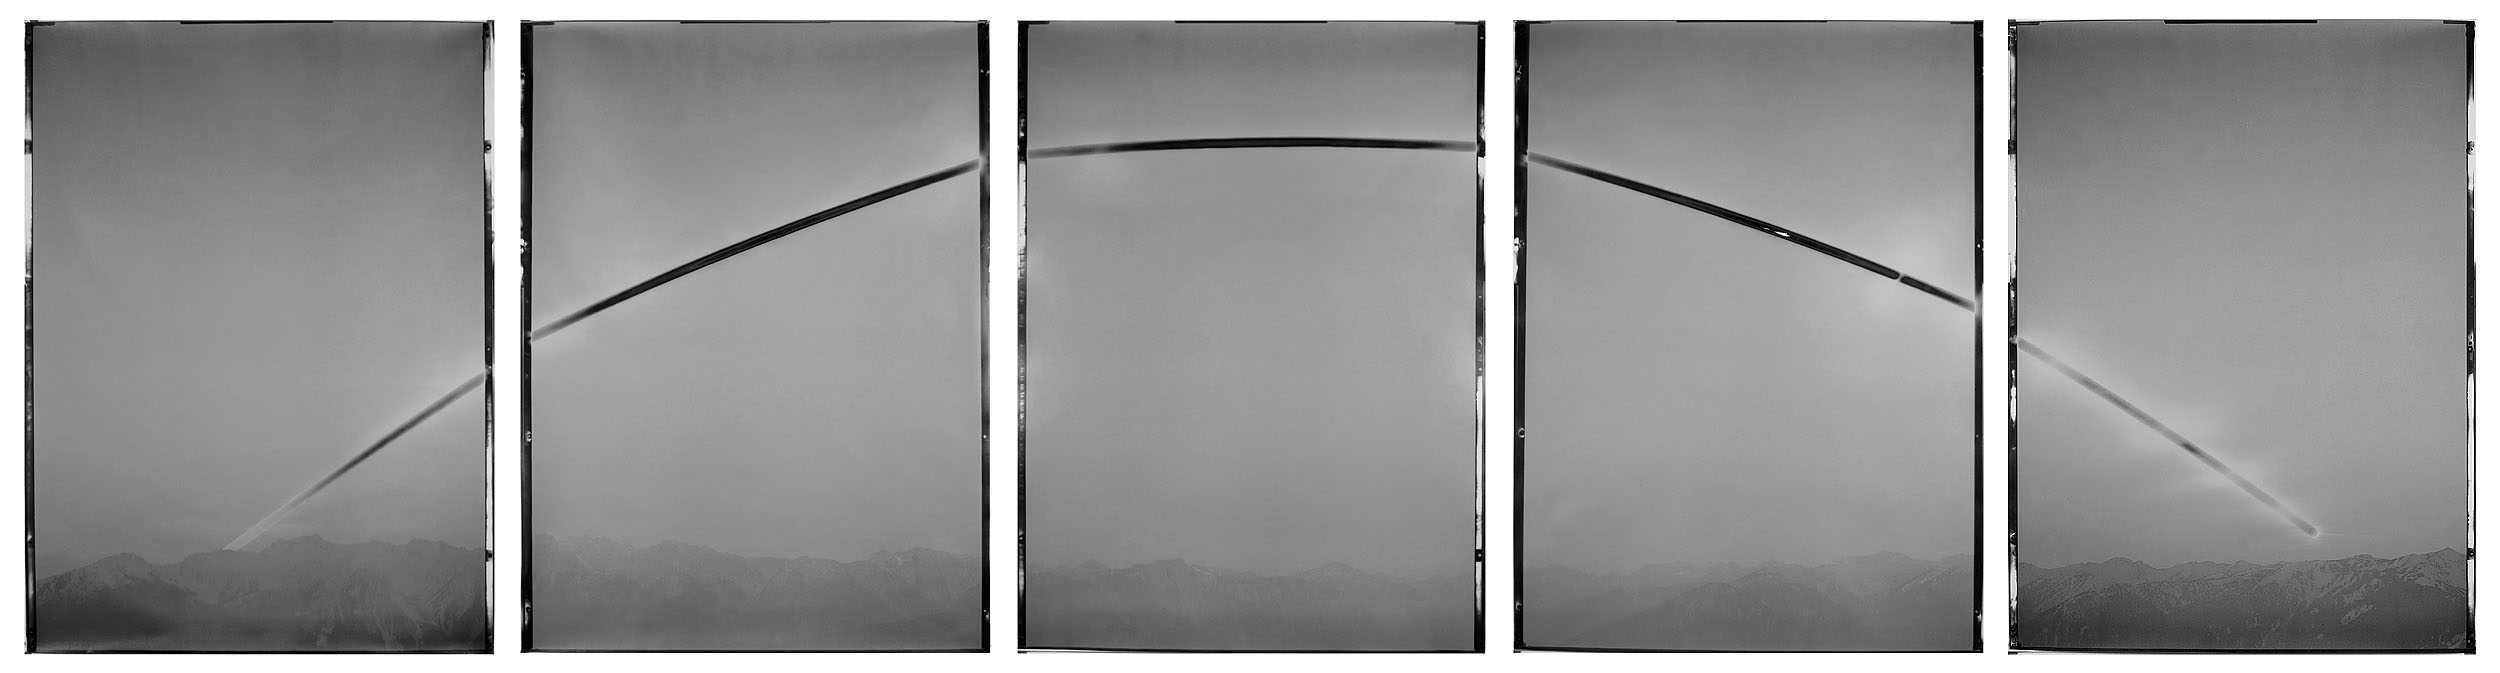 "Sunburned GSP #666 (Hurricane Ridge, WA), 2013. Six 30""x40"" unique gelatin silver paper negatives. Private collection"